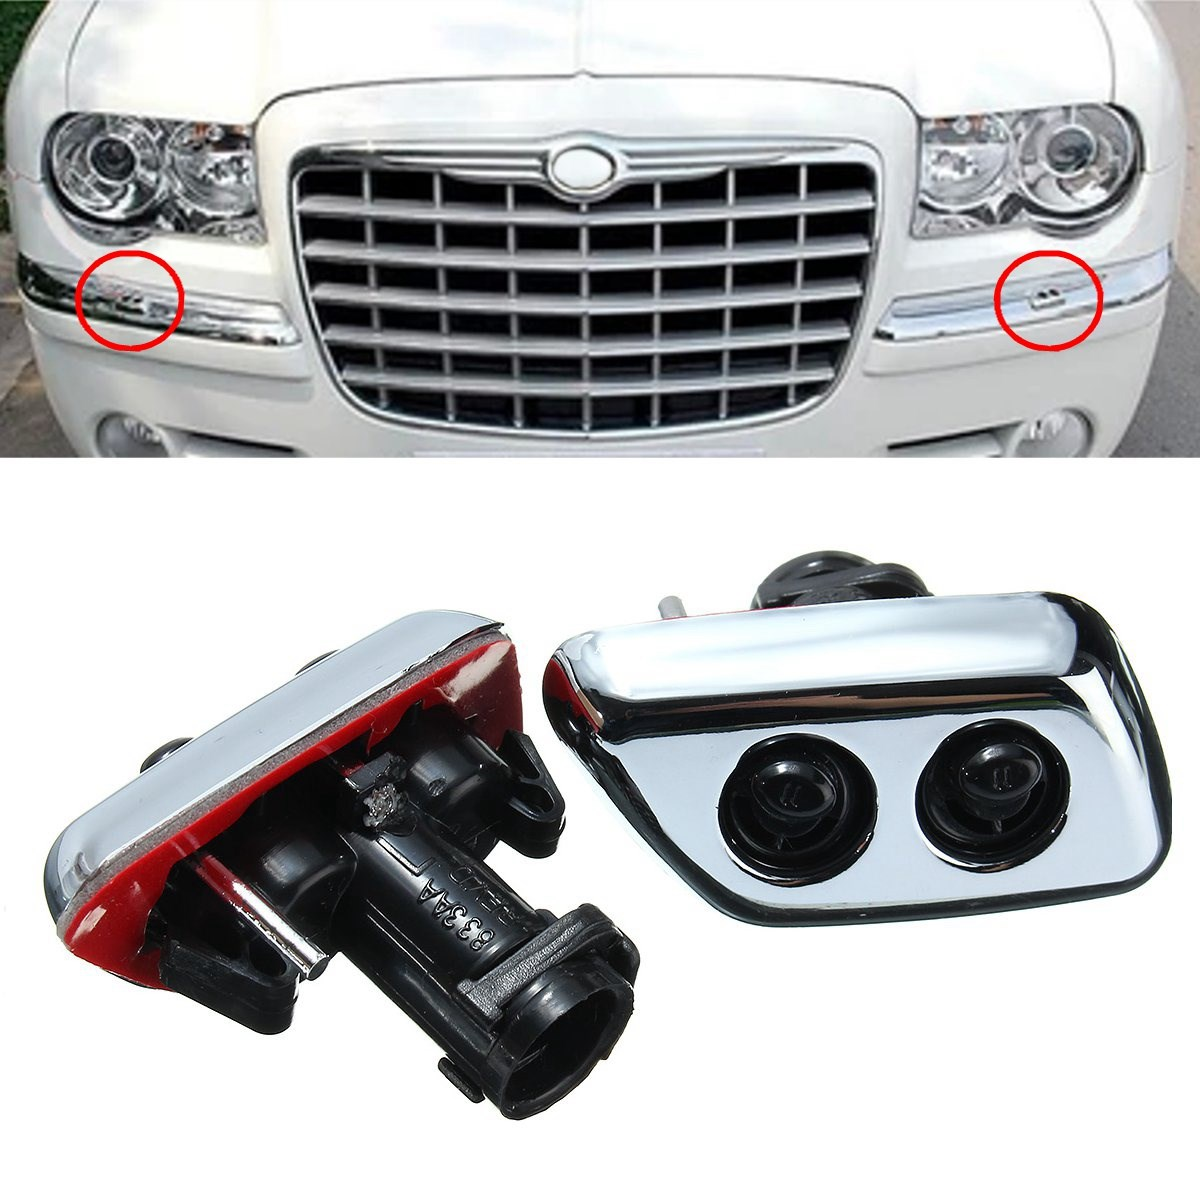 Pair Headlight Lamp Washer Front Bumper Water Spray Nozzle Jet Chrysler 300 Ke Light Fuse Box Cap Jetspray For C 2005 2007 Black Chrome In Windscreen Wipers From